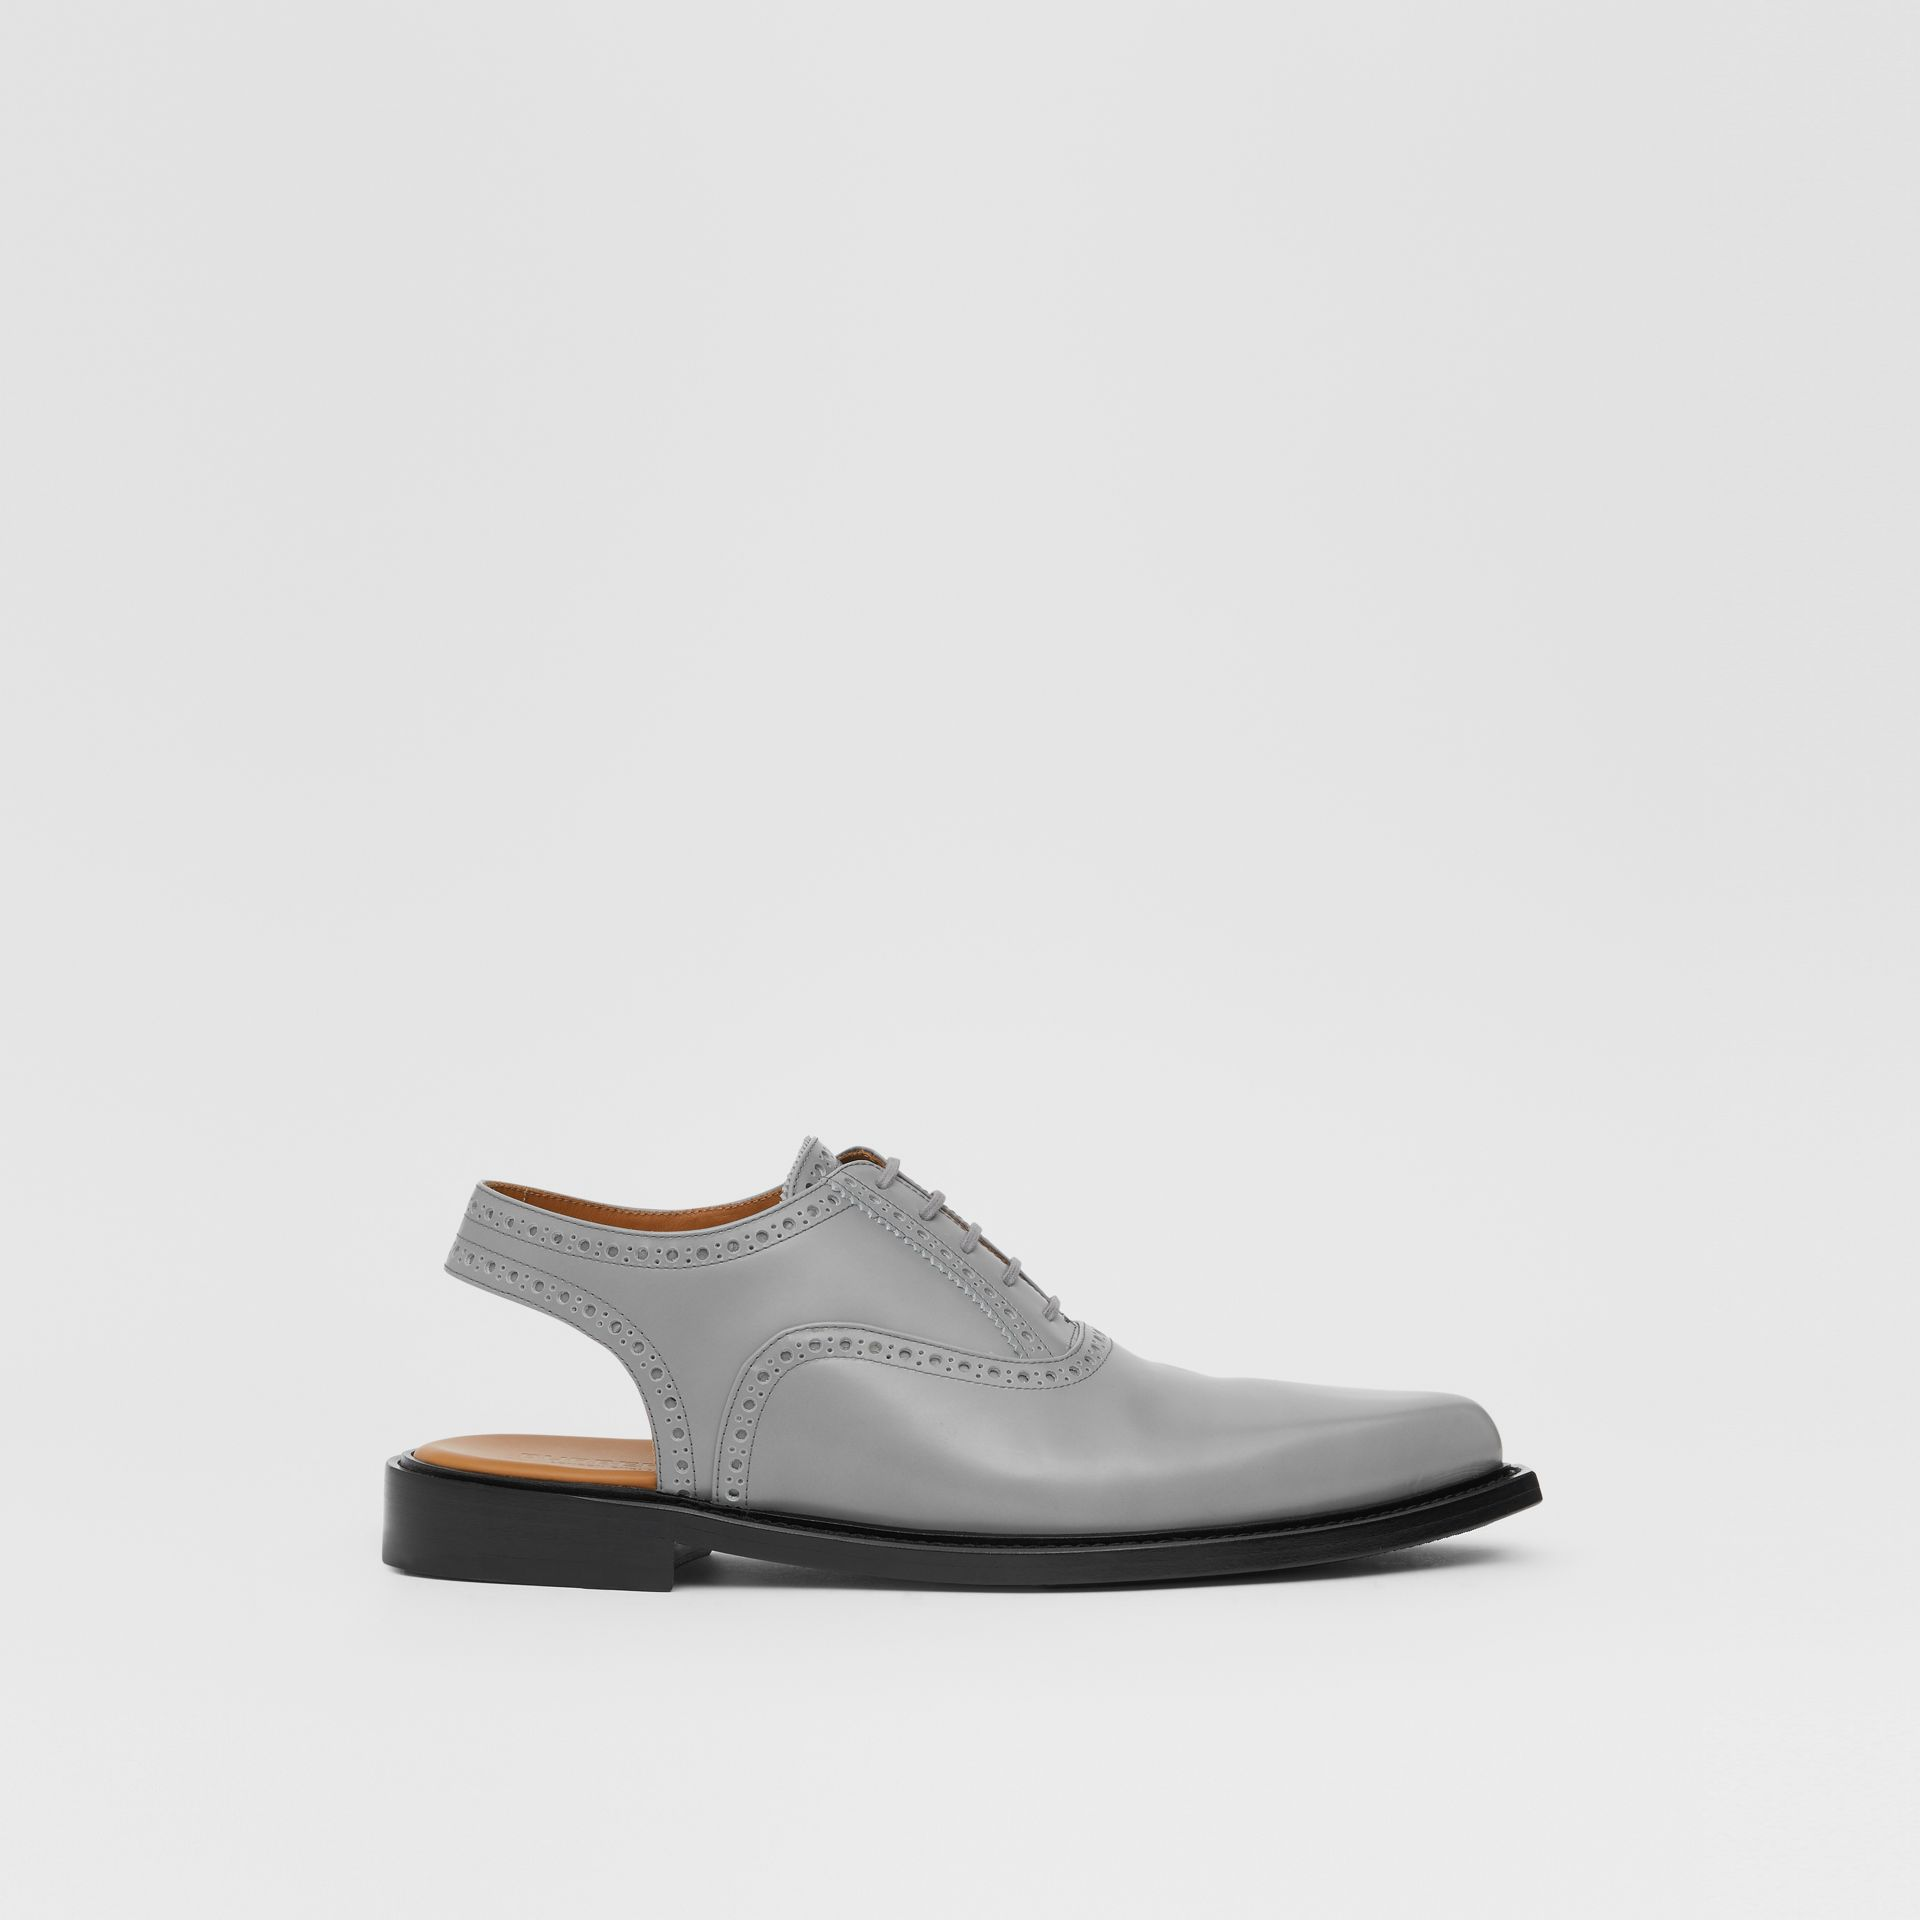 Leather Slingback Oxford Brogues in Cloud Grey | Burberry - gallery image 5